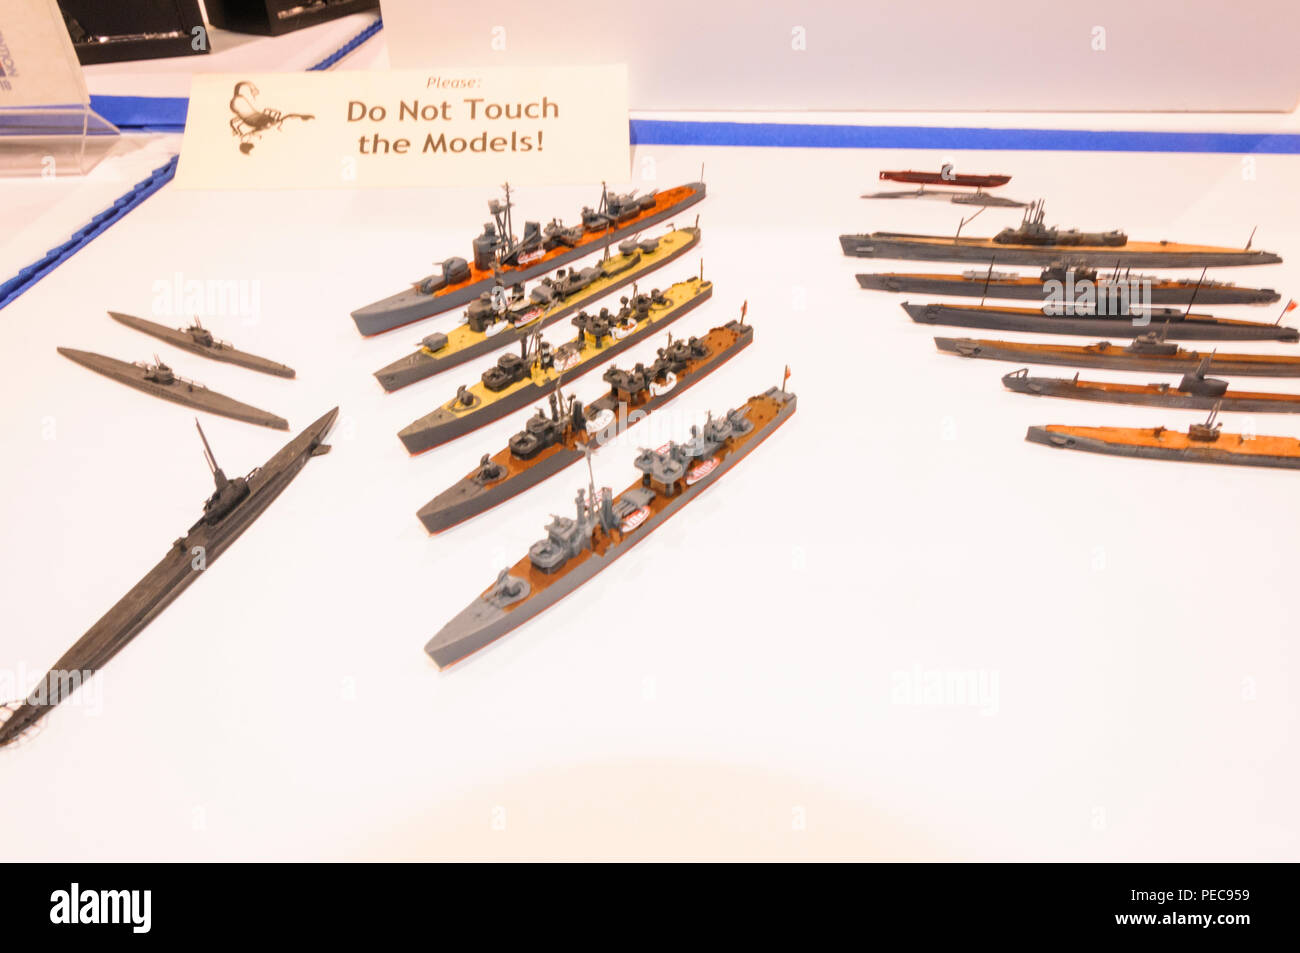 Models of military destroyers are on display at International Modeling convention in Phoenix, Arizona - Stock Image